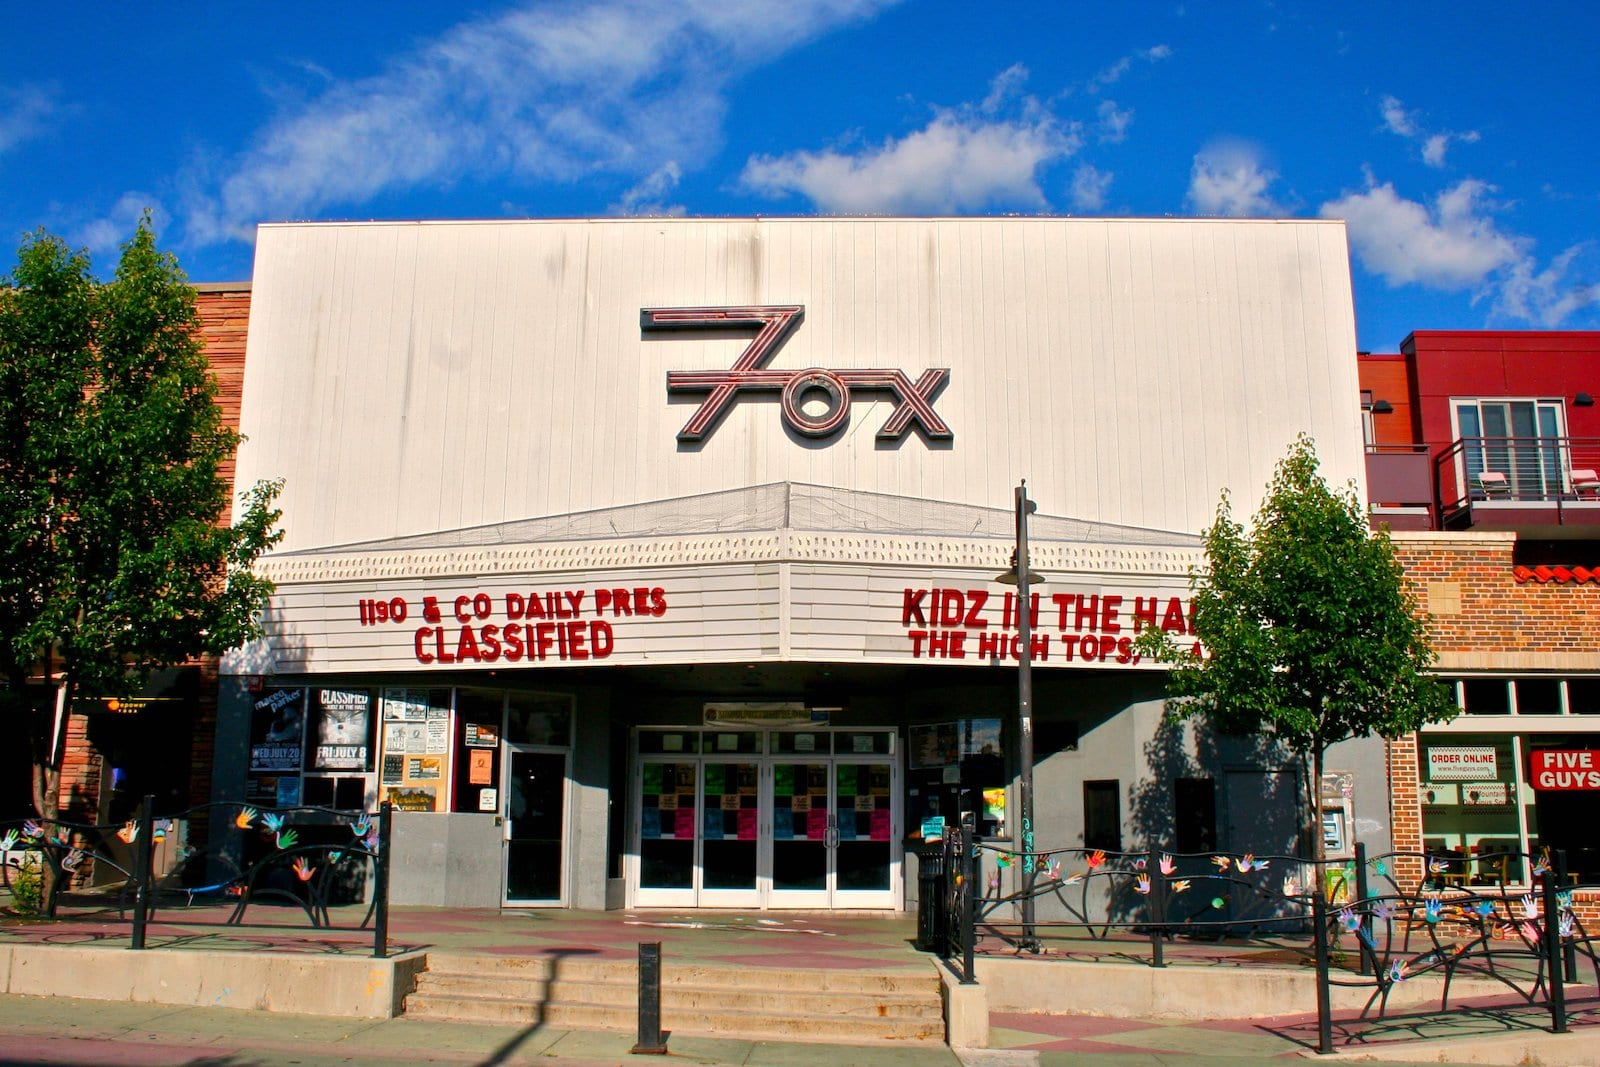 Fox Theatre, Boulder, Colorado